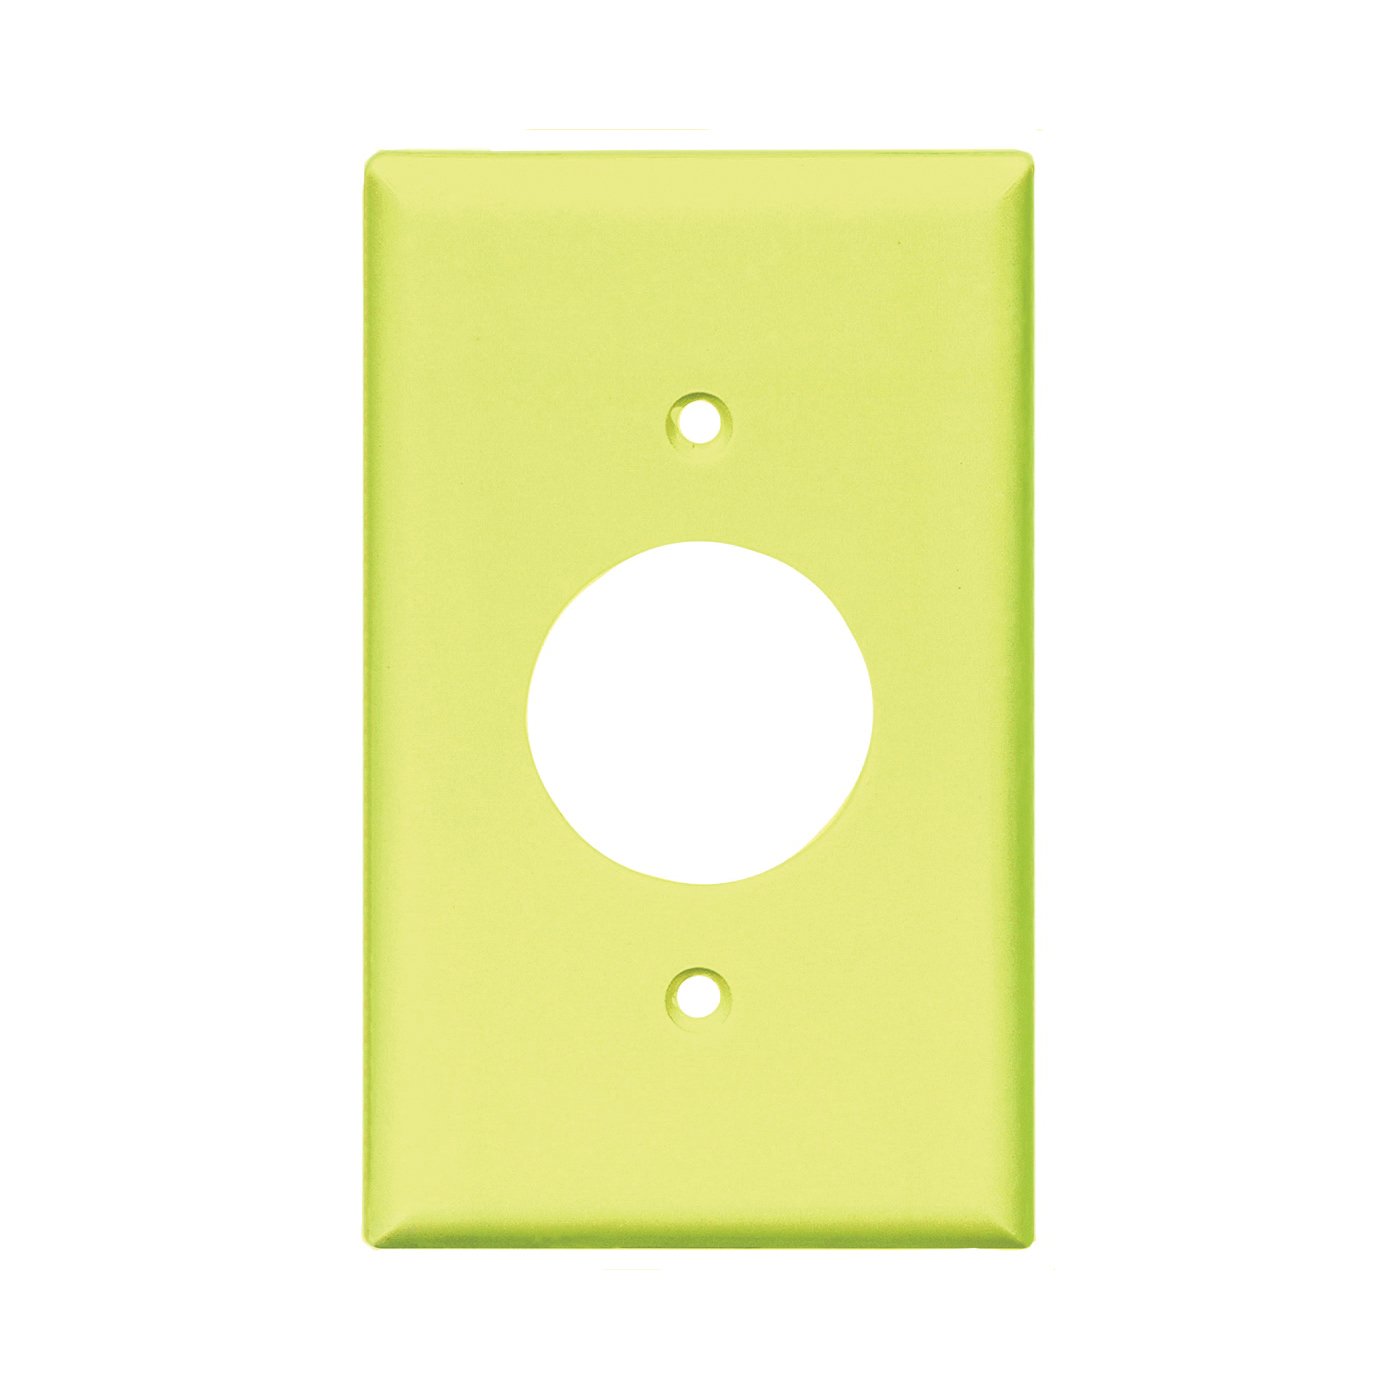 Picture of Eaton Wiring Devices 2131V-BOX Single Receptacle Wallplate, 4-1/2 in L, 2-3/4 in W, 1-Gang, Thermoset, Ivory